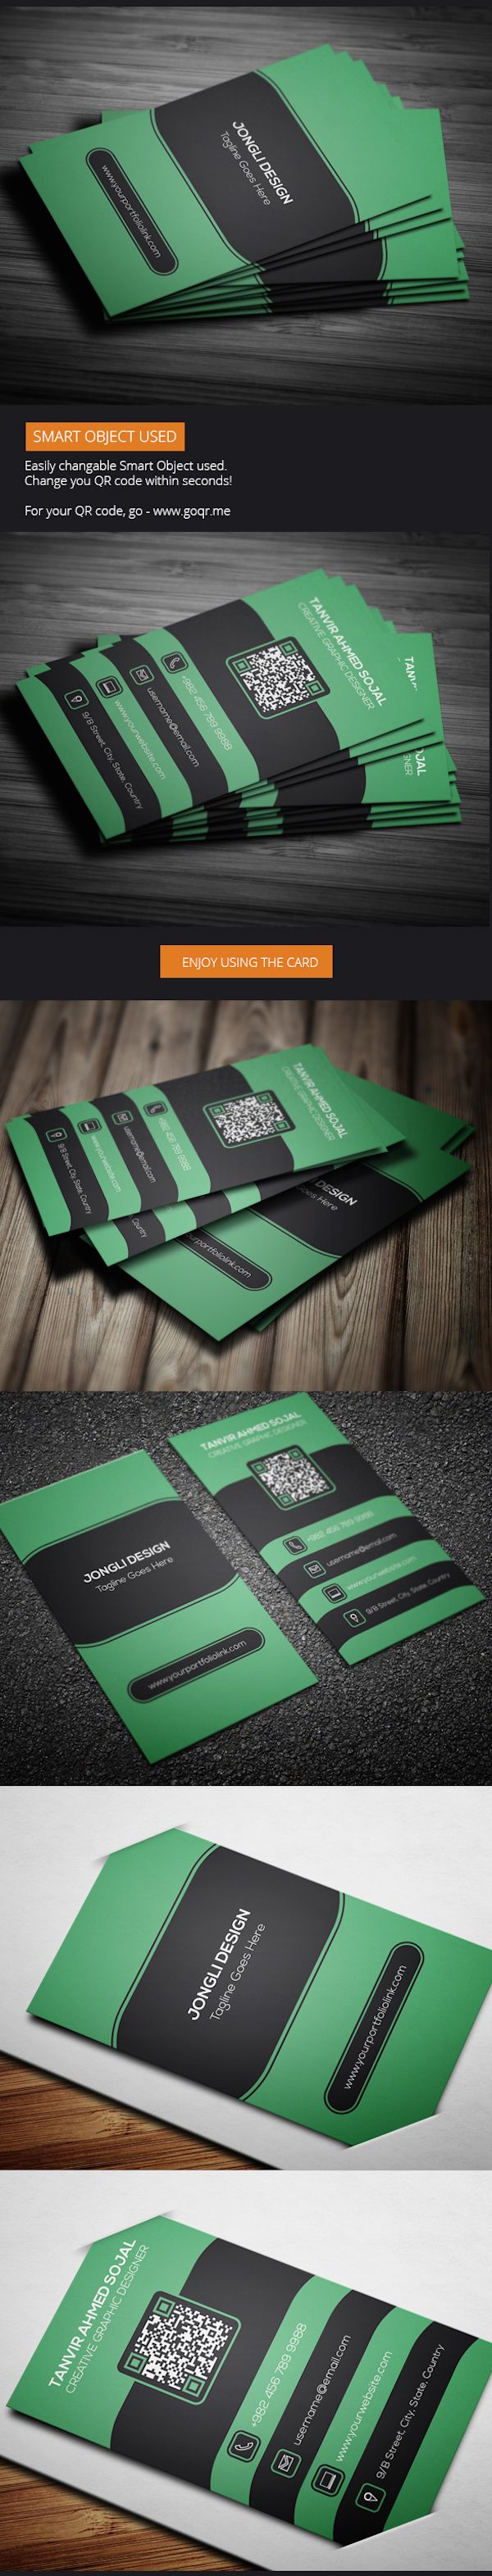 The 25 best free business card templates ideas on pinterest heres collection of free printable templates for business cards these business cards are not just fine but pretty as well business cards are well though magicingreecefo Choice Image